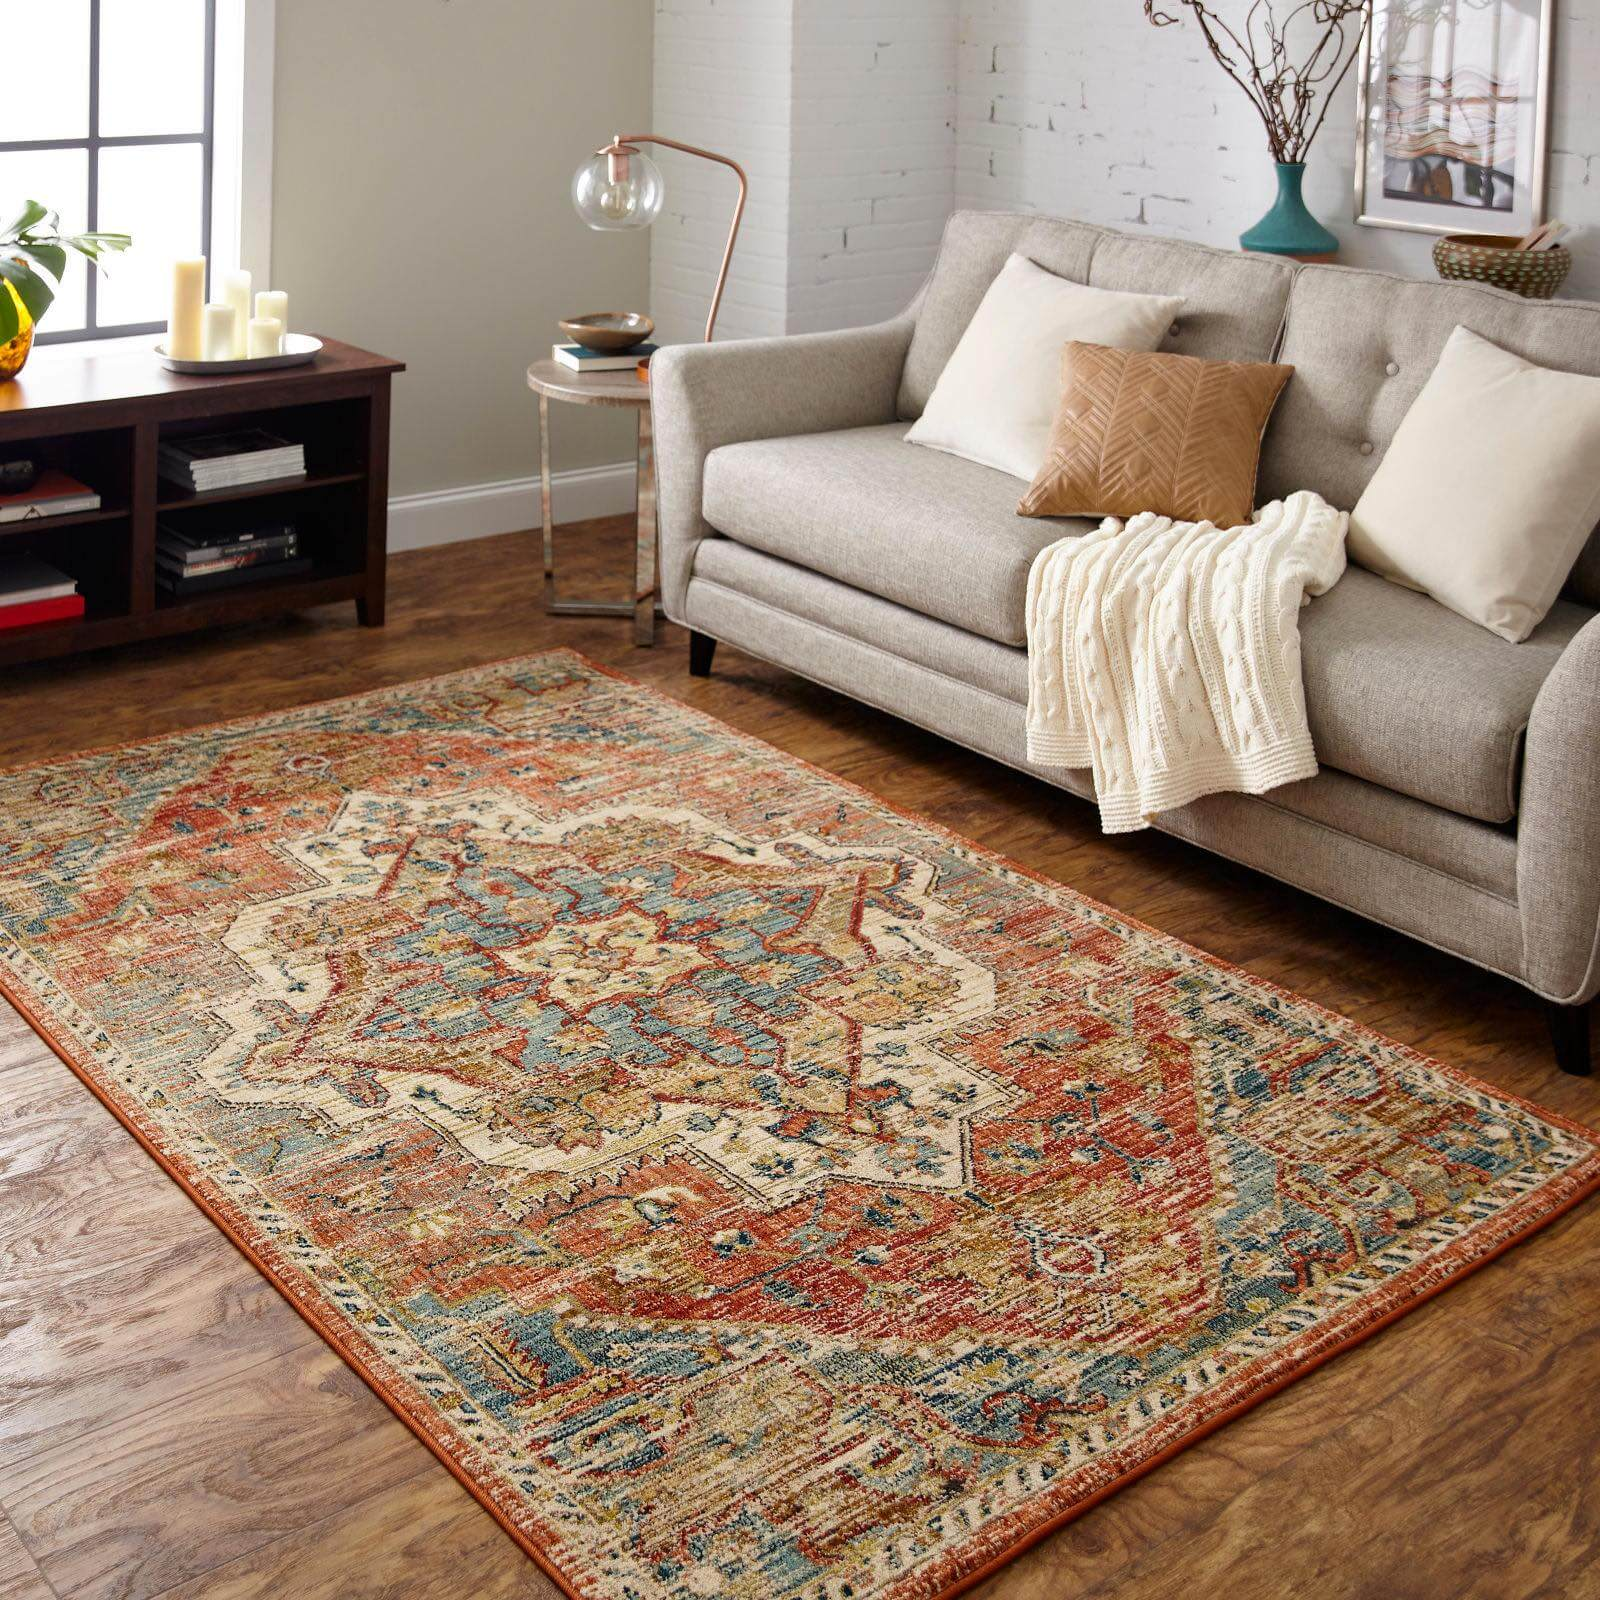 Title Retailer Companyname In, What Color Rug For Living Room